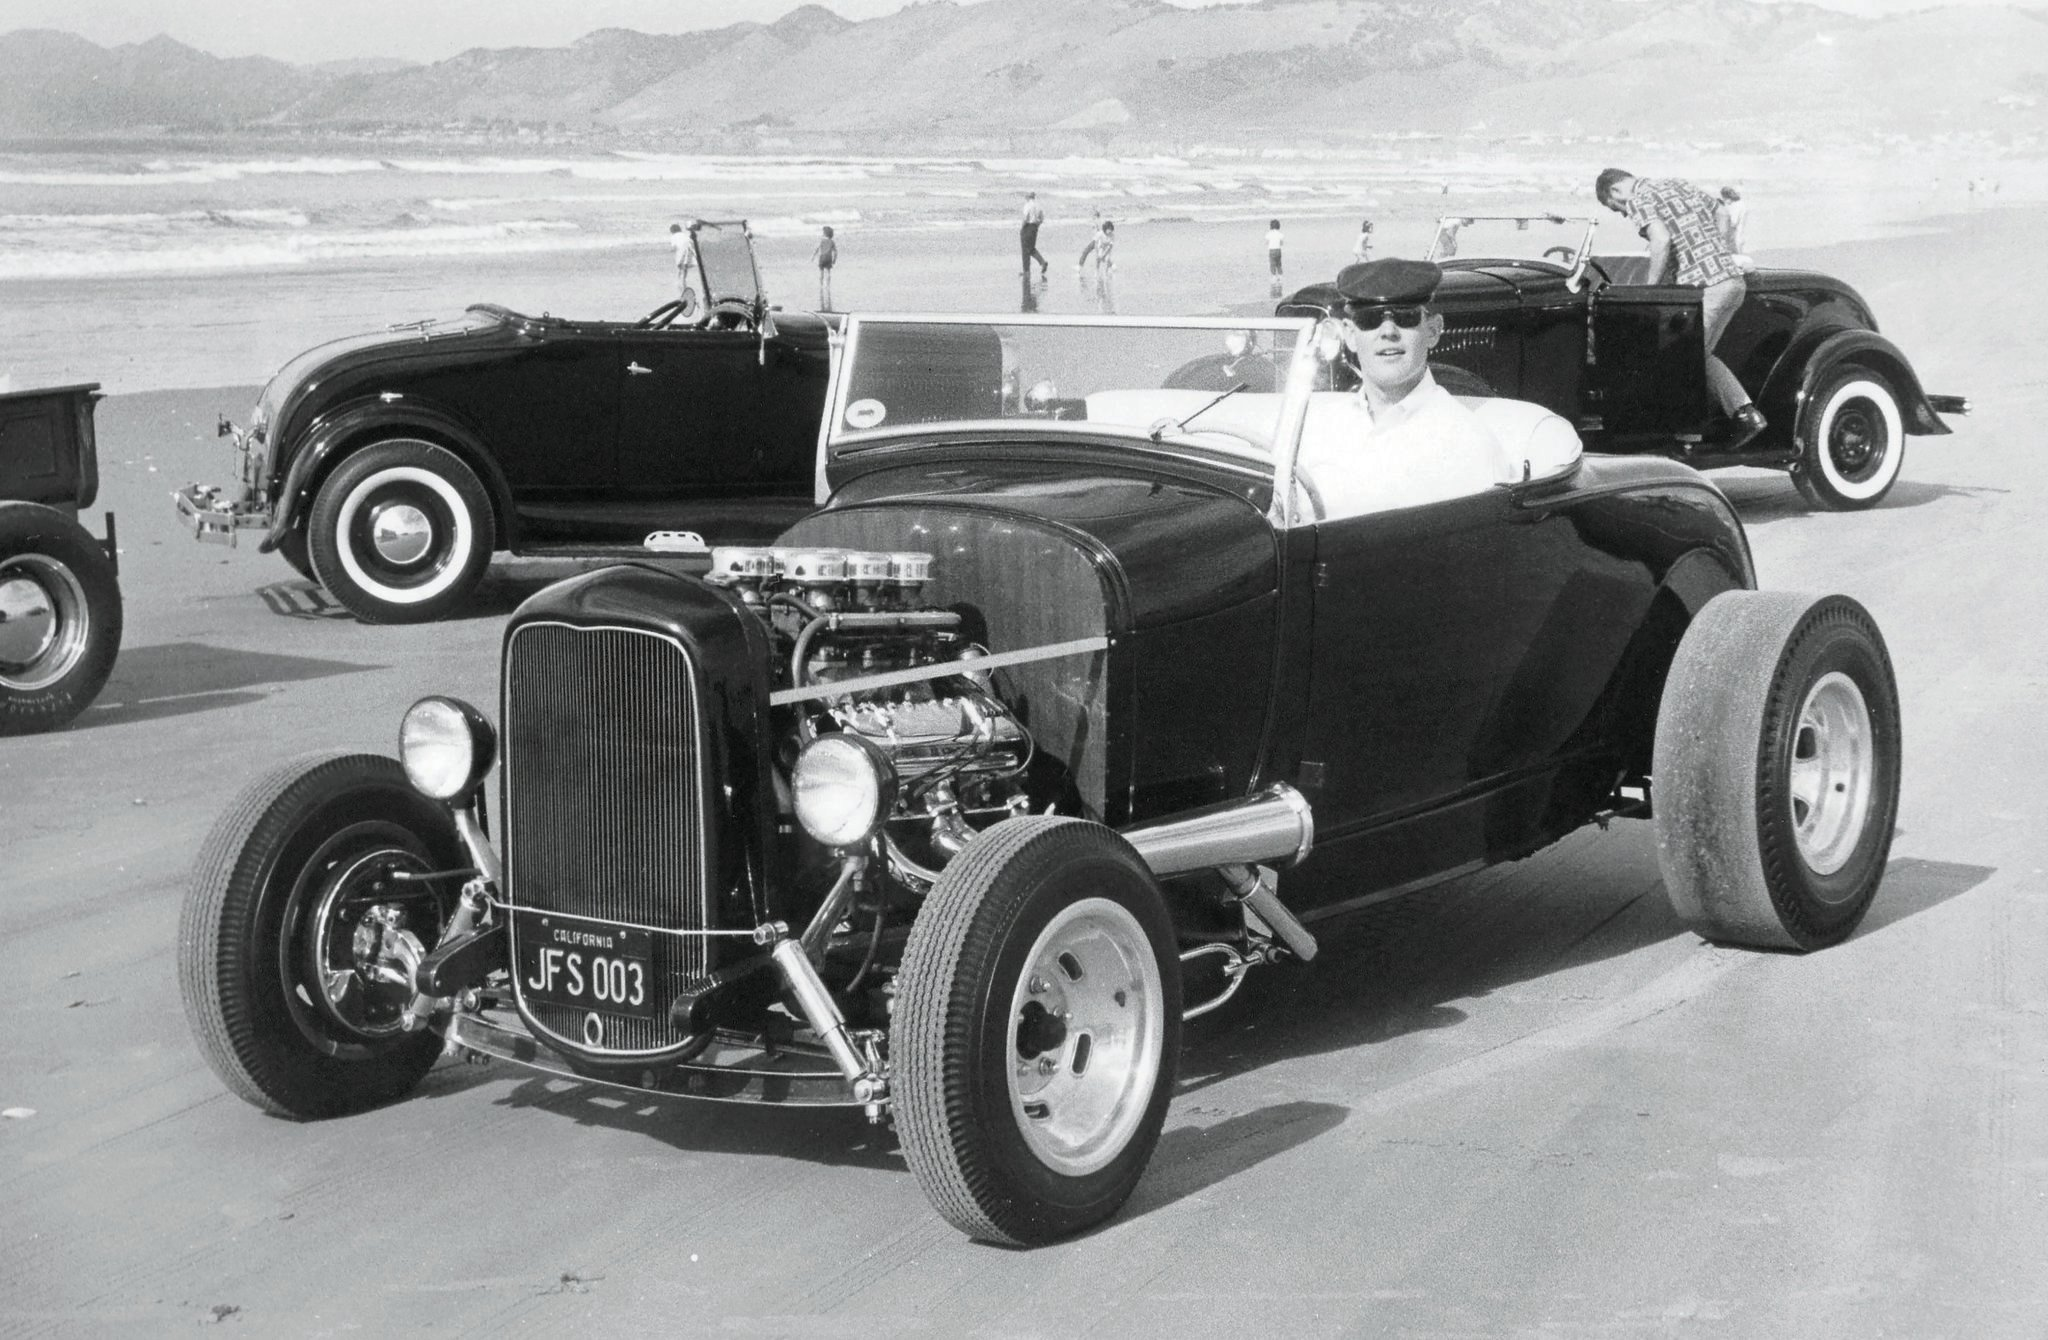 Sam Conrad and his Olds-powered '29 highboy with the L.A. Roadsters and Bay Area Roadsters, Pismo Beach, 1966.